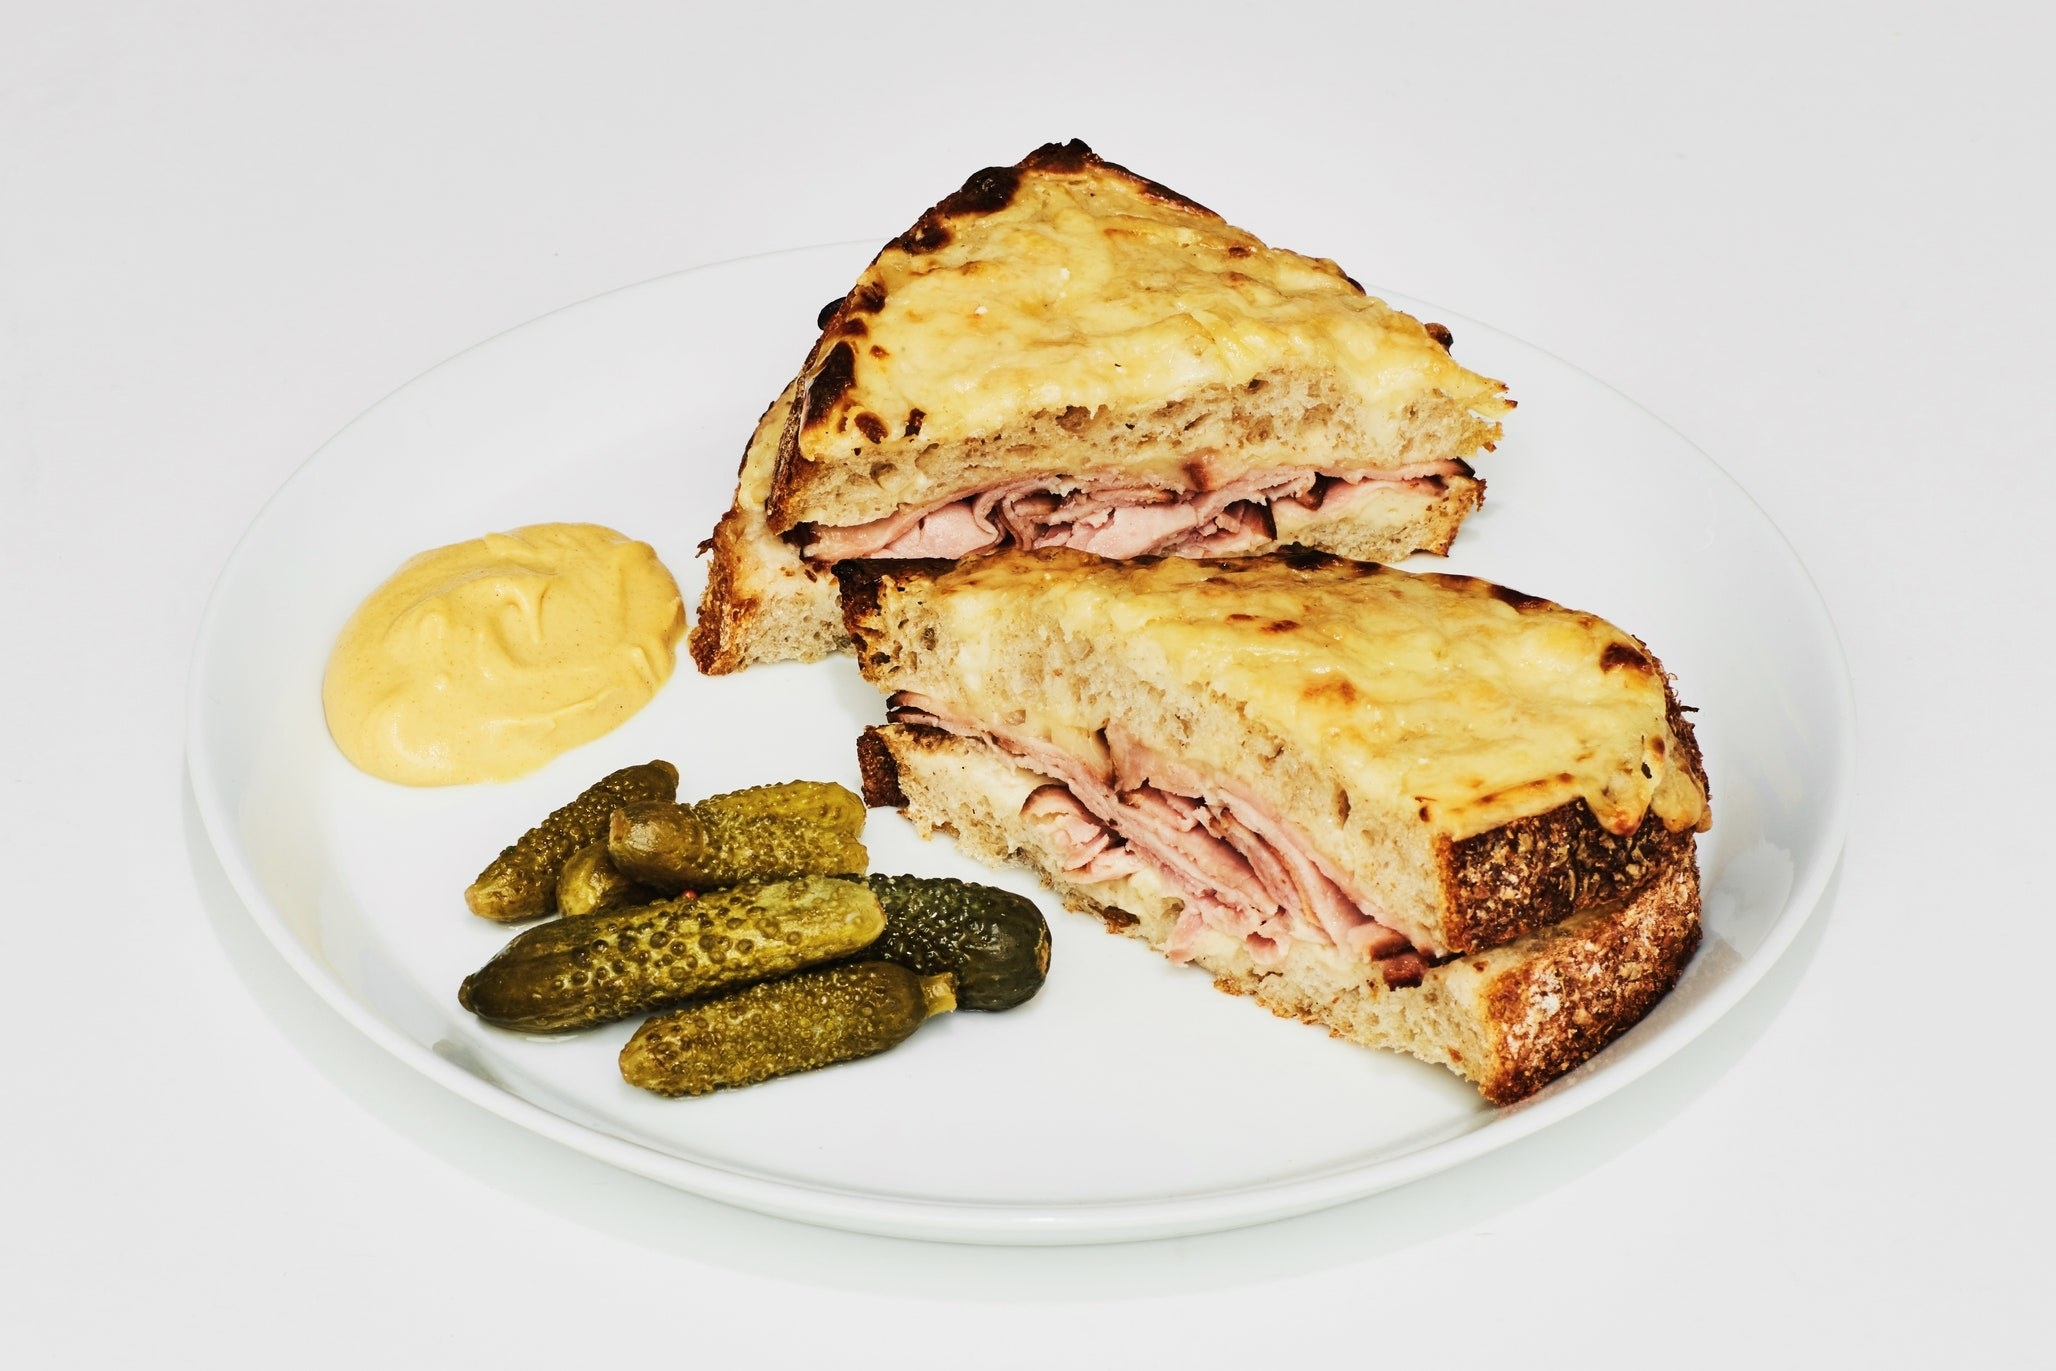 A sandwich made of thick slices of bread, melty cheese, and thin ham on a plate with a side of small pickles and dijon mustard